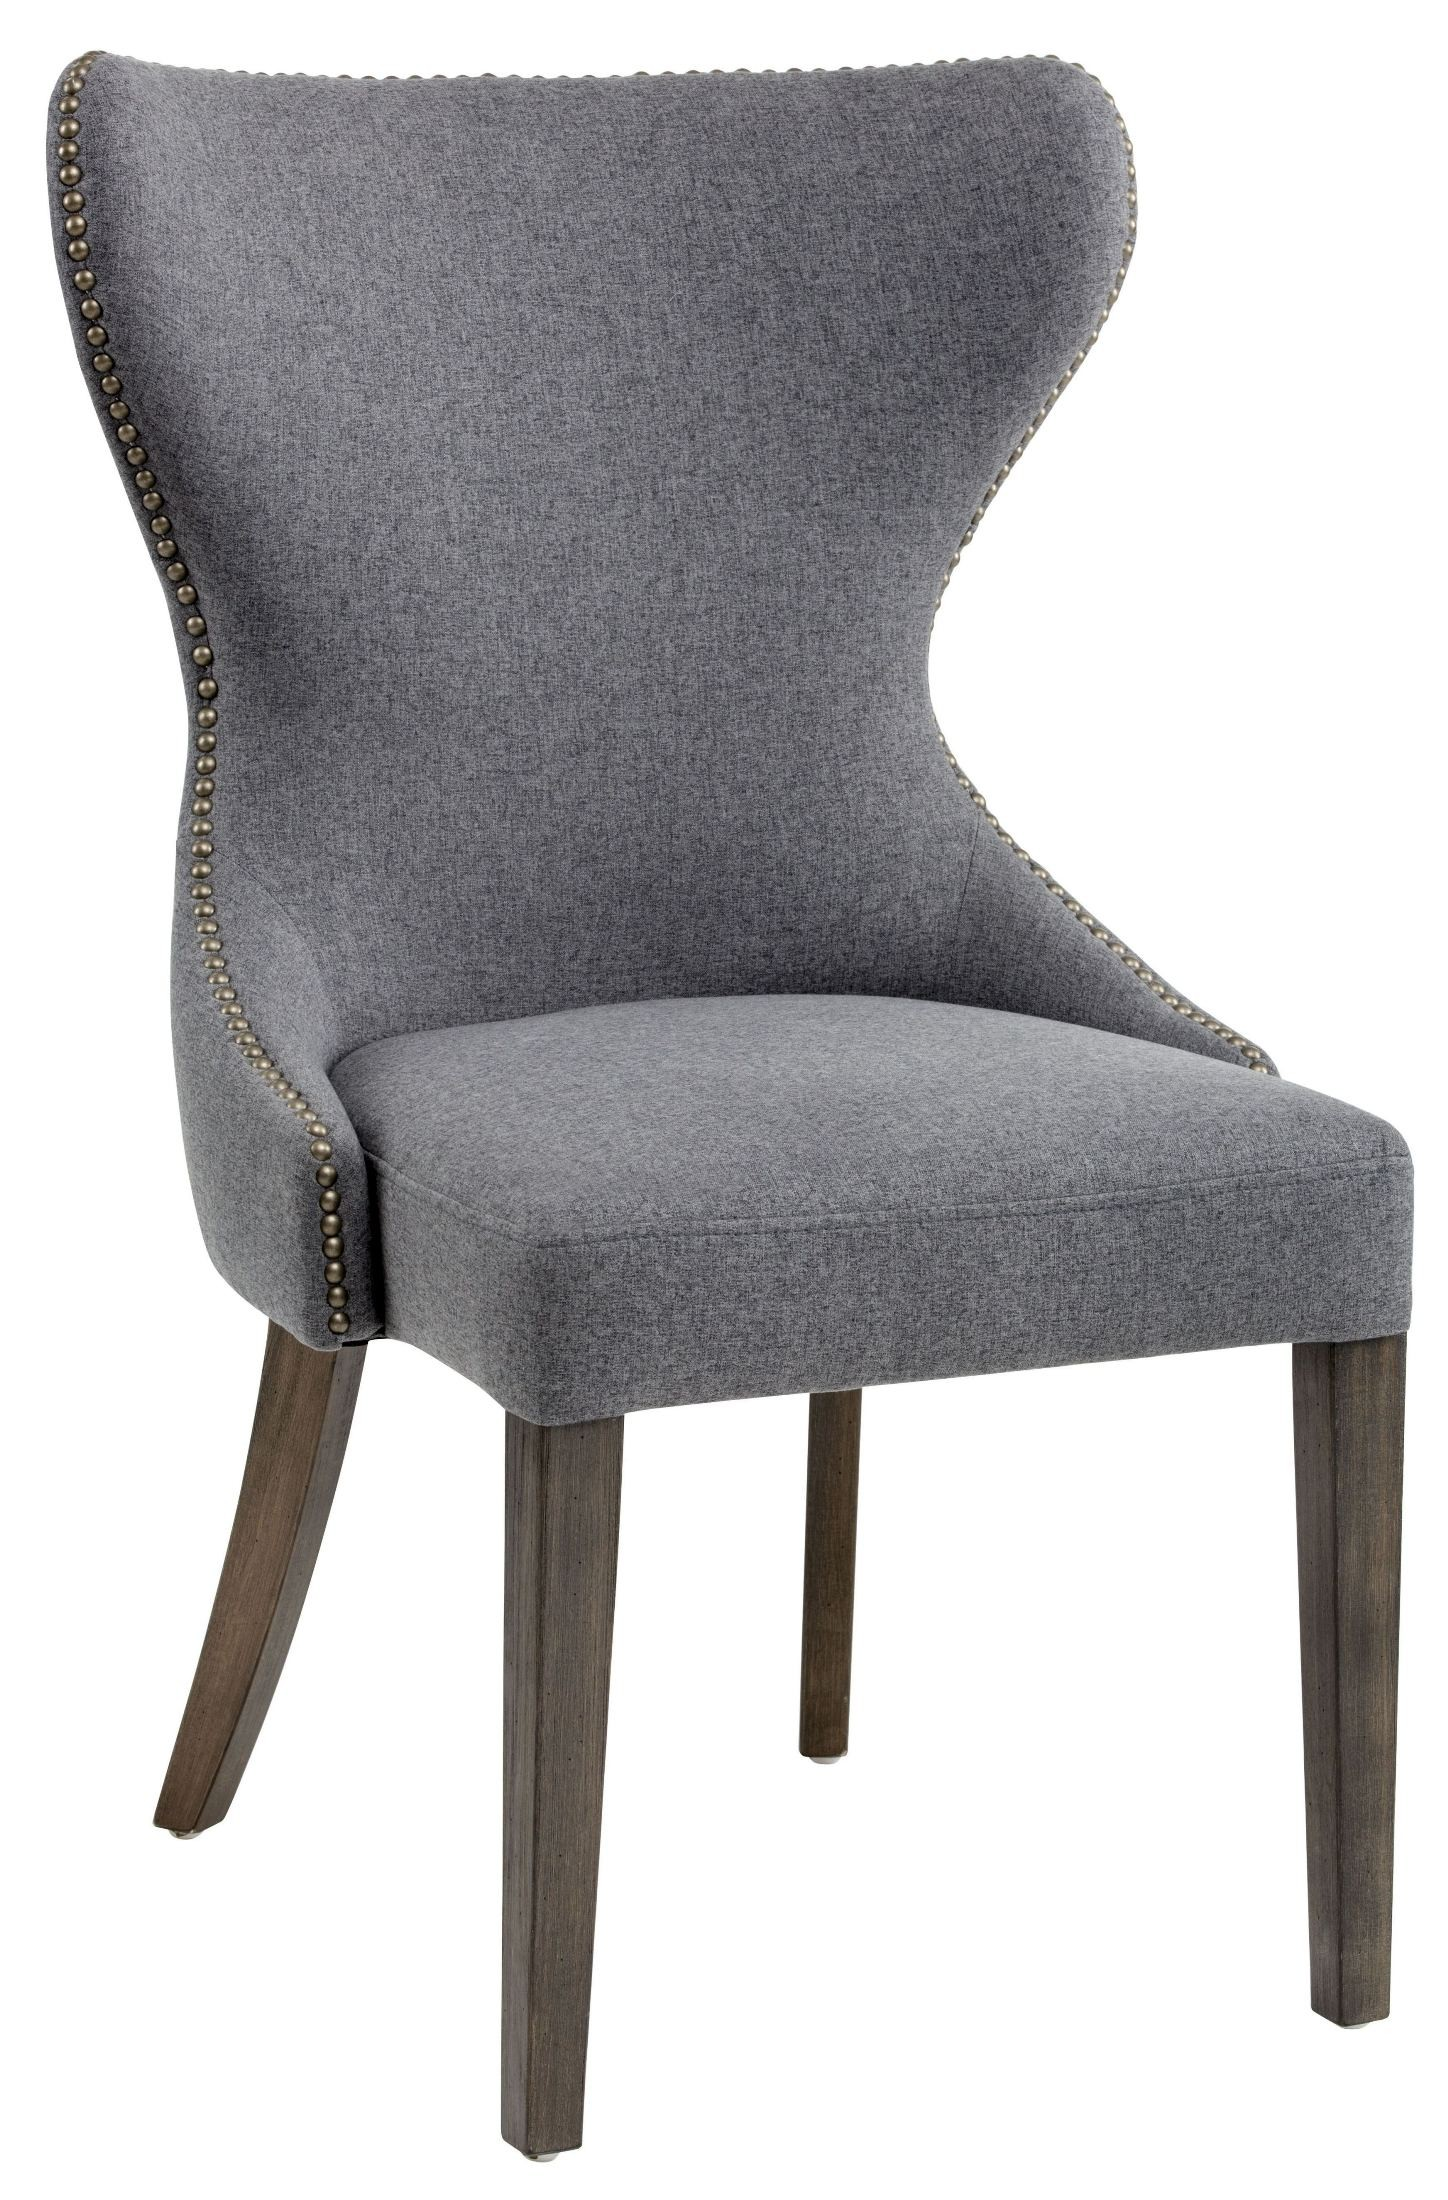 Gray Kitchen Chairs Ariana Dark Grey Fabric Dining Chair From Sunpan Coleman